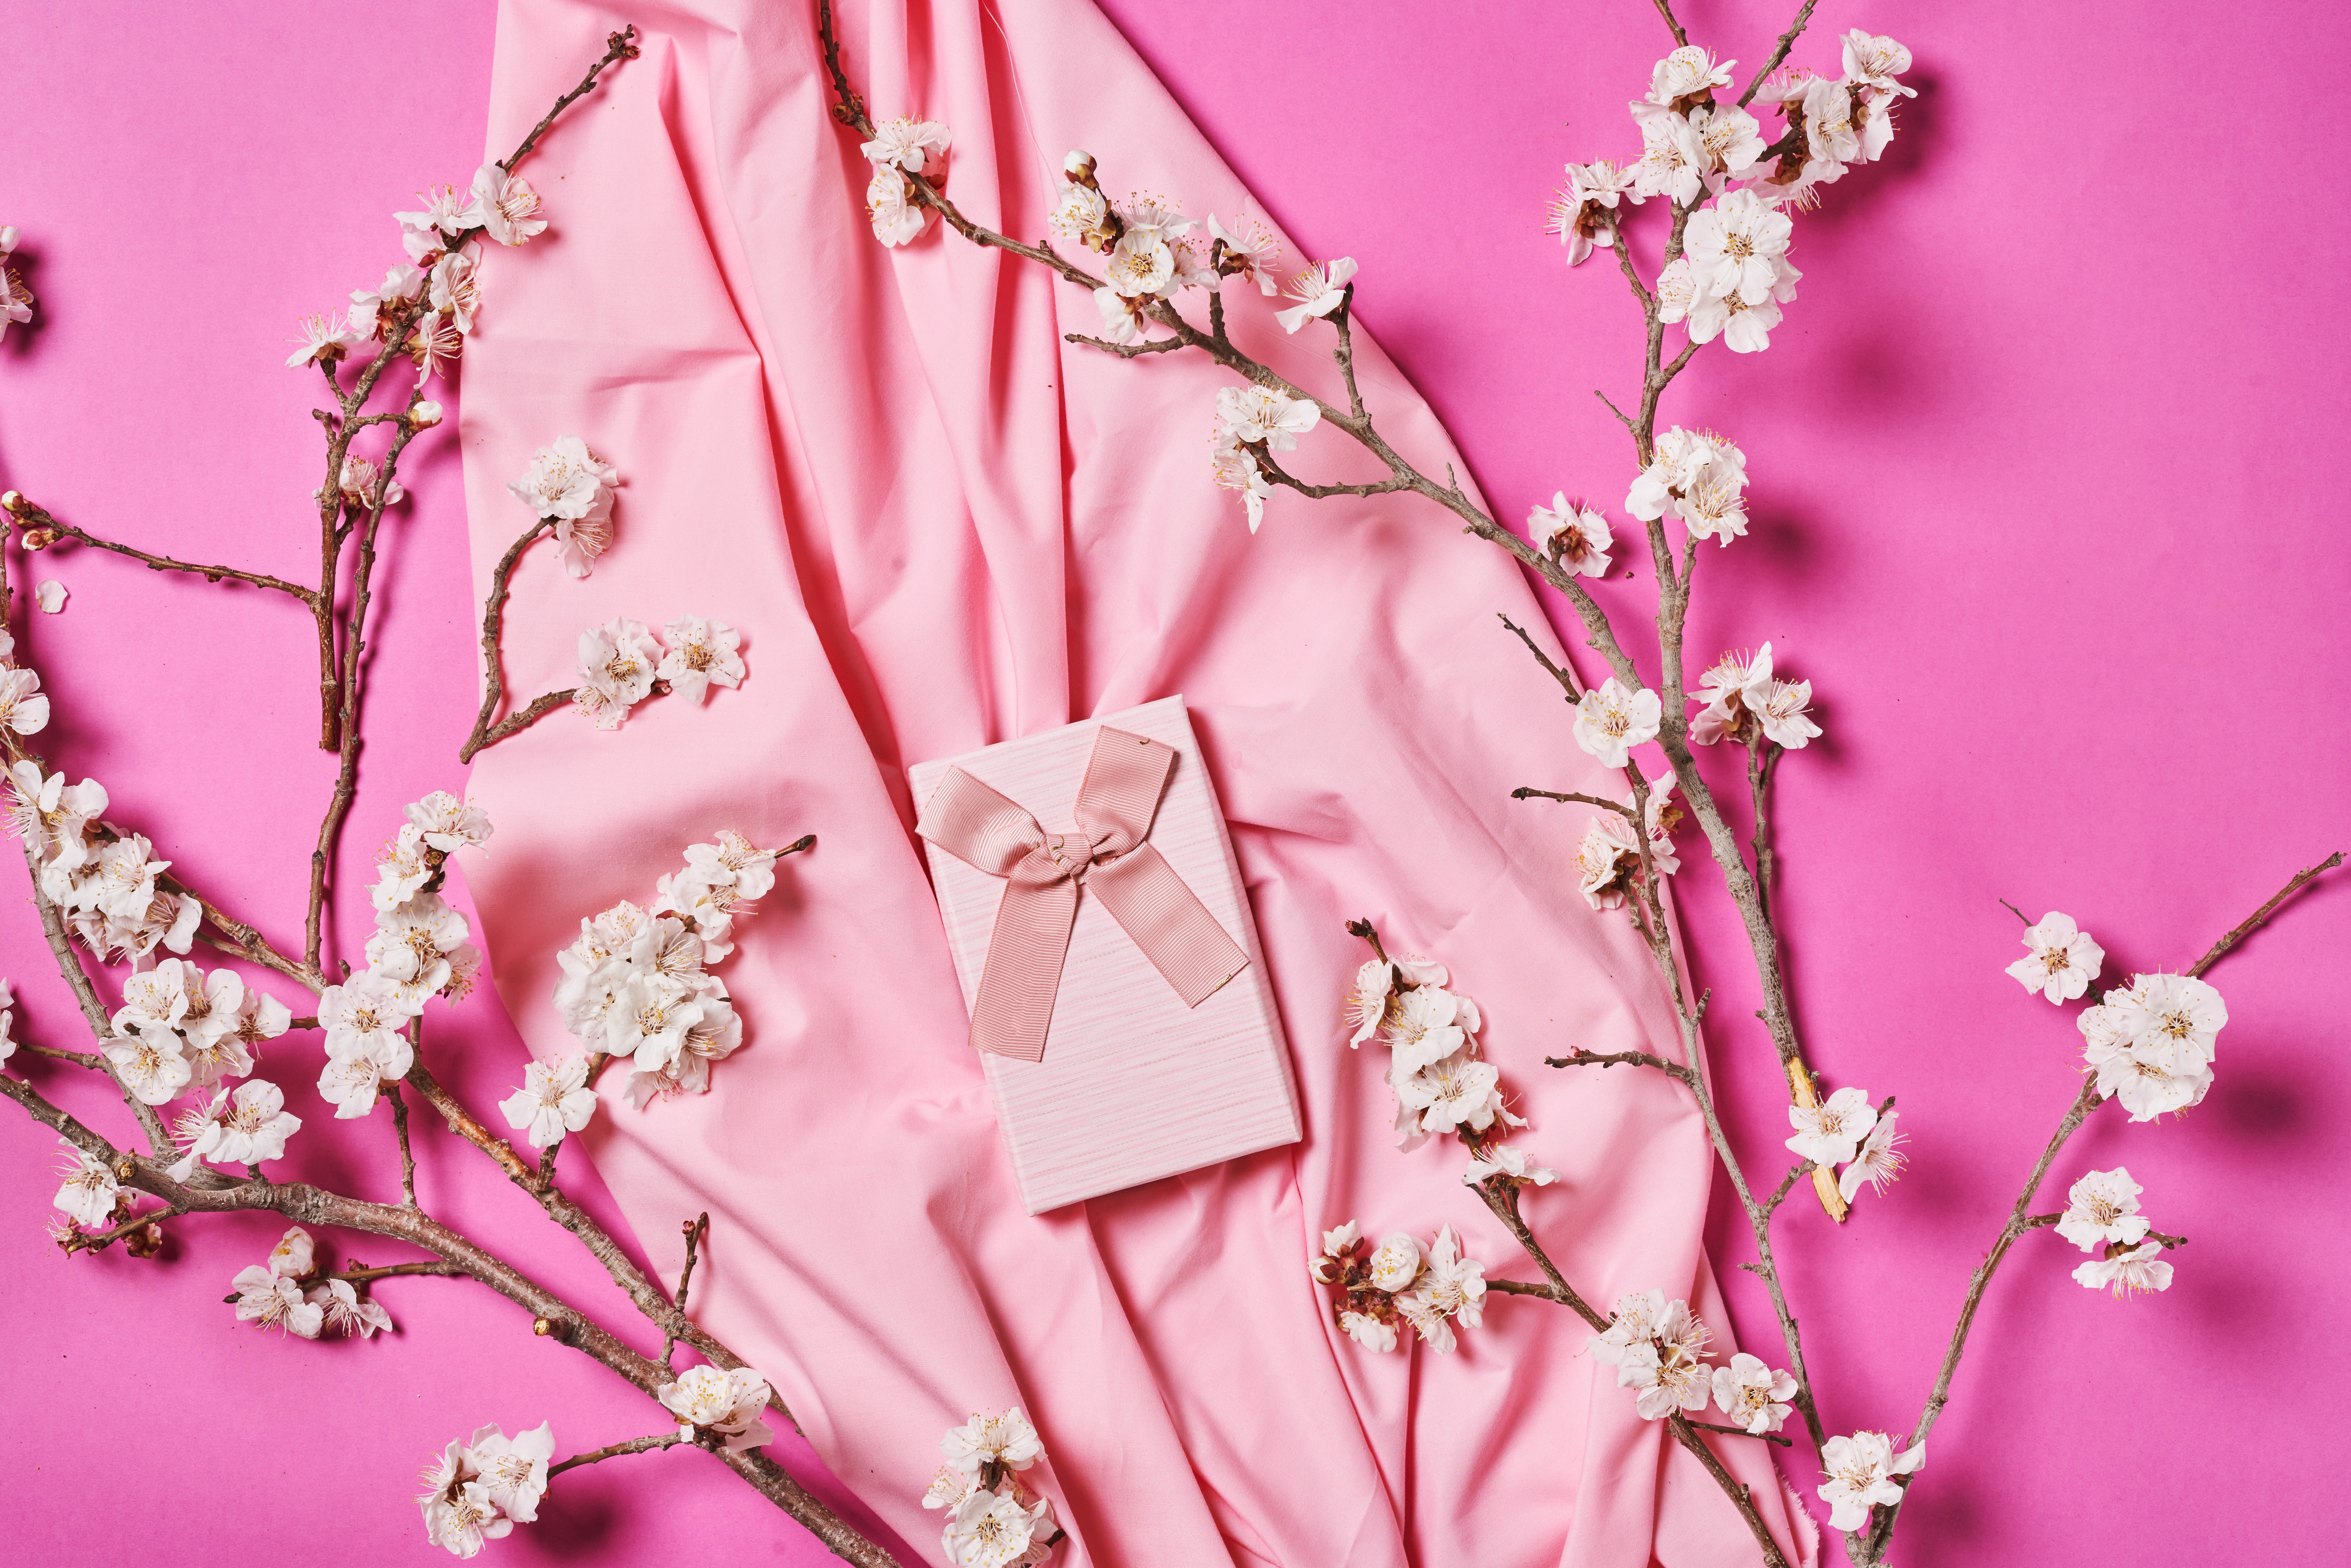 109713 download wallpaper Miscellanea, Miscellaneous, Box, Tape, Present, Gift, Cloth, Branches, Pink, Flowers screensavers and pictures for free